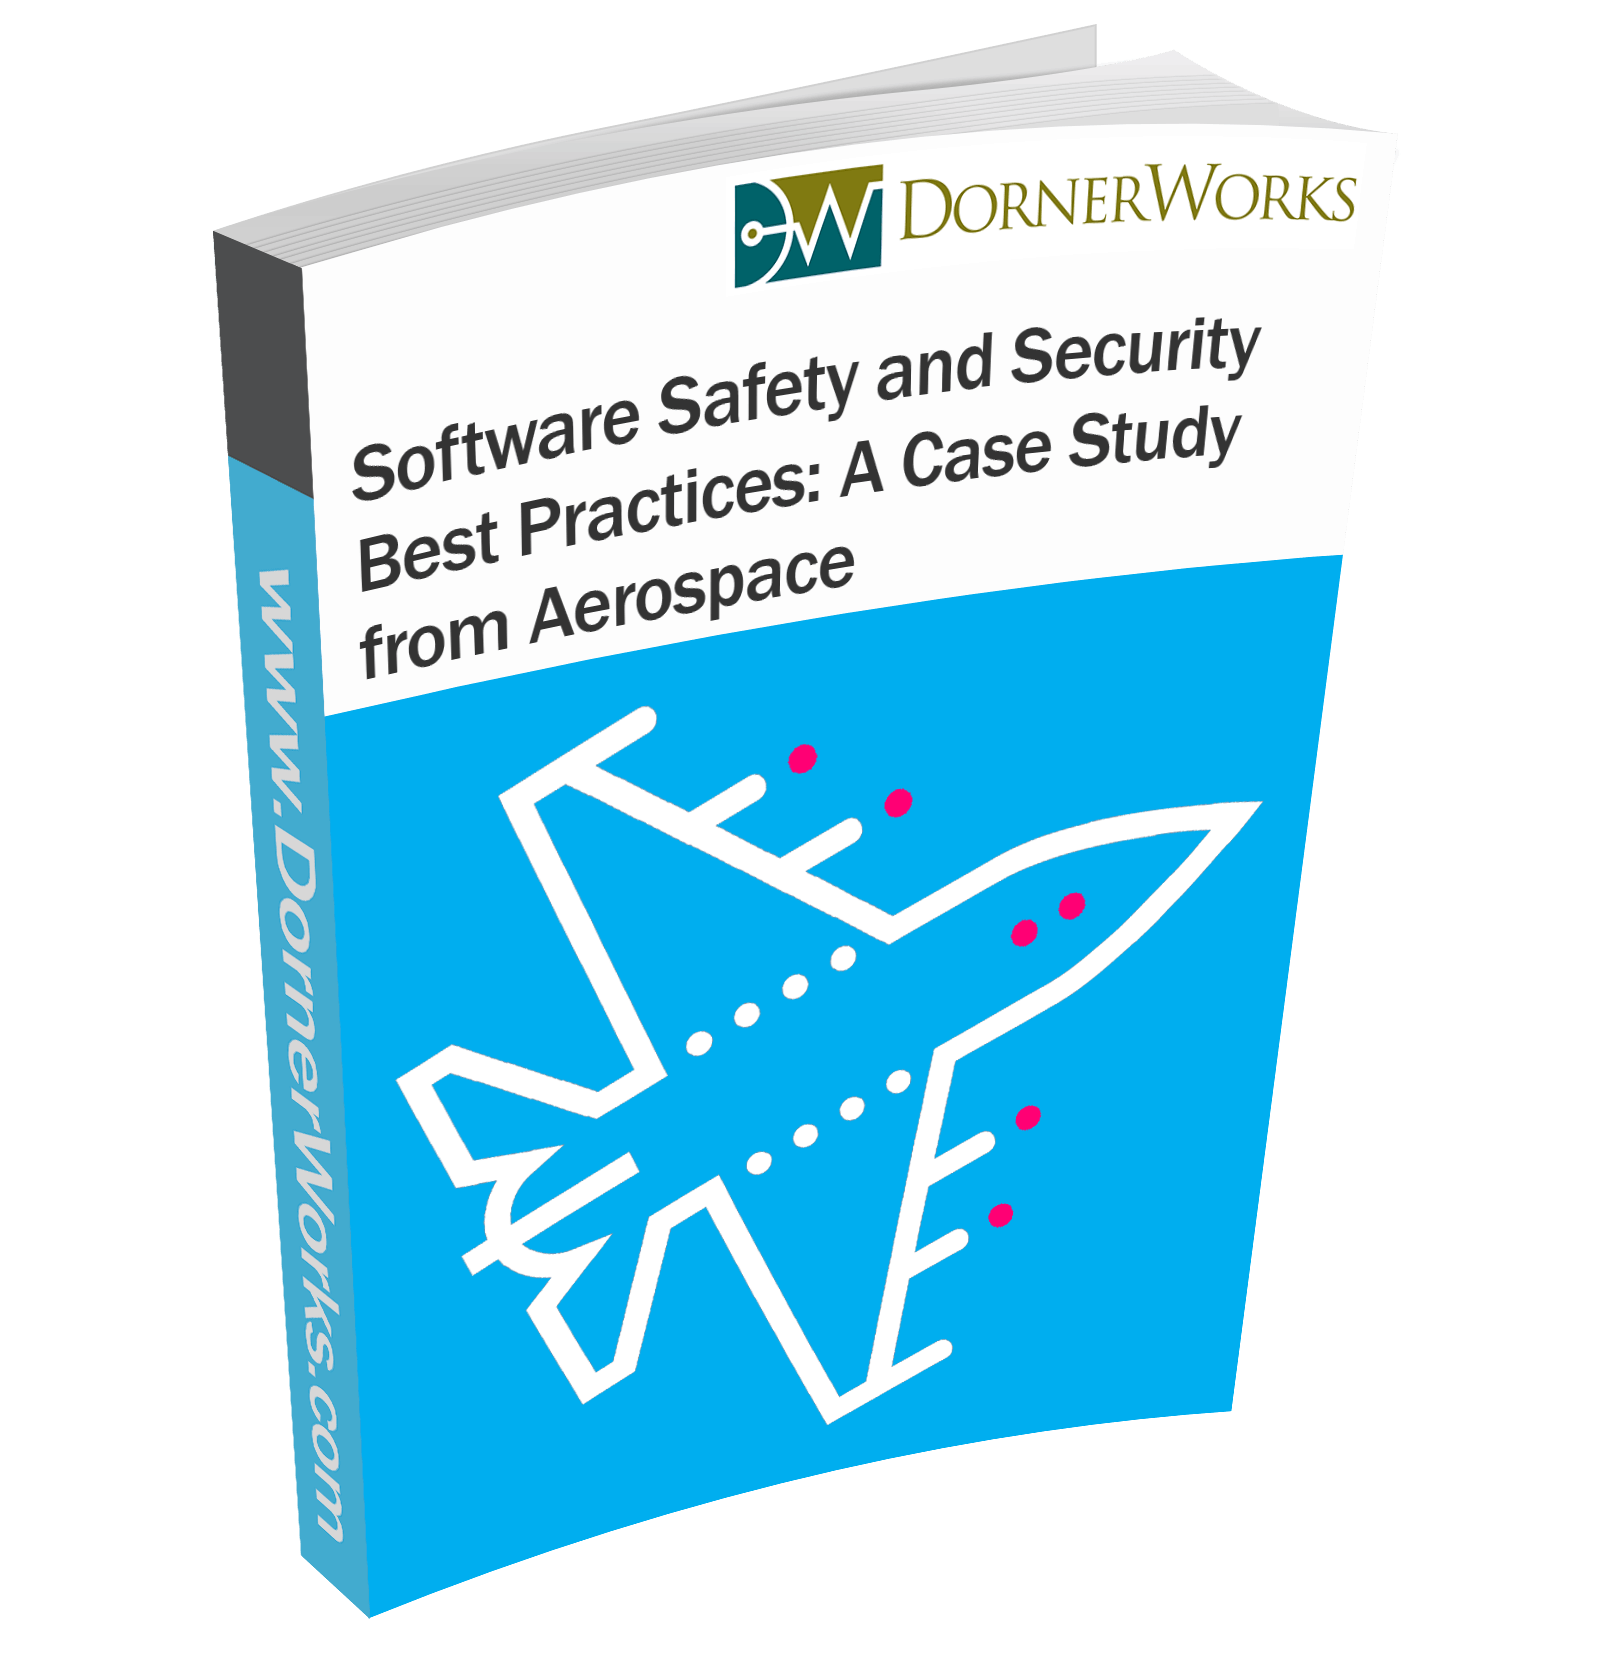 Software Safety and Security Best Practices: A Case Study from Aerospace